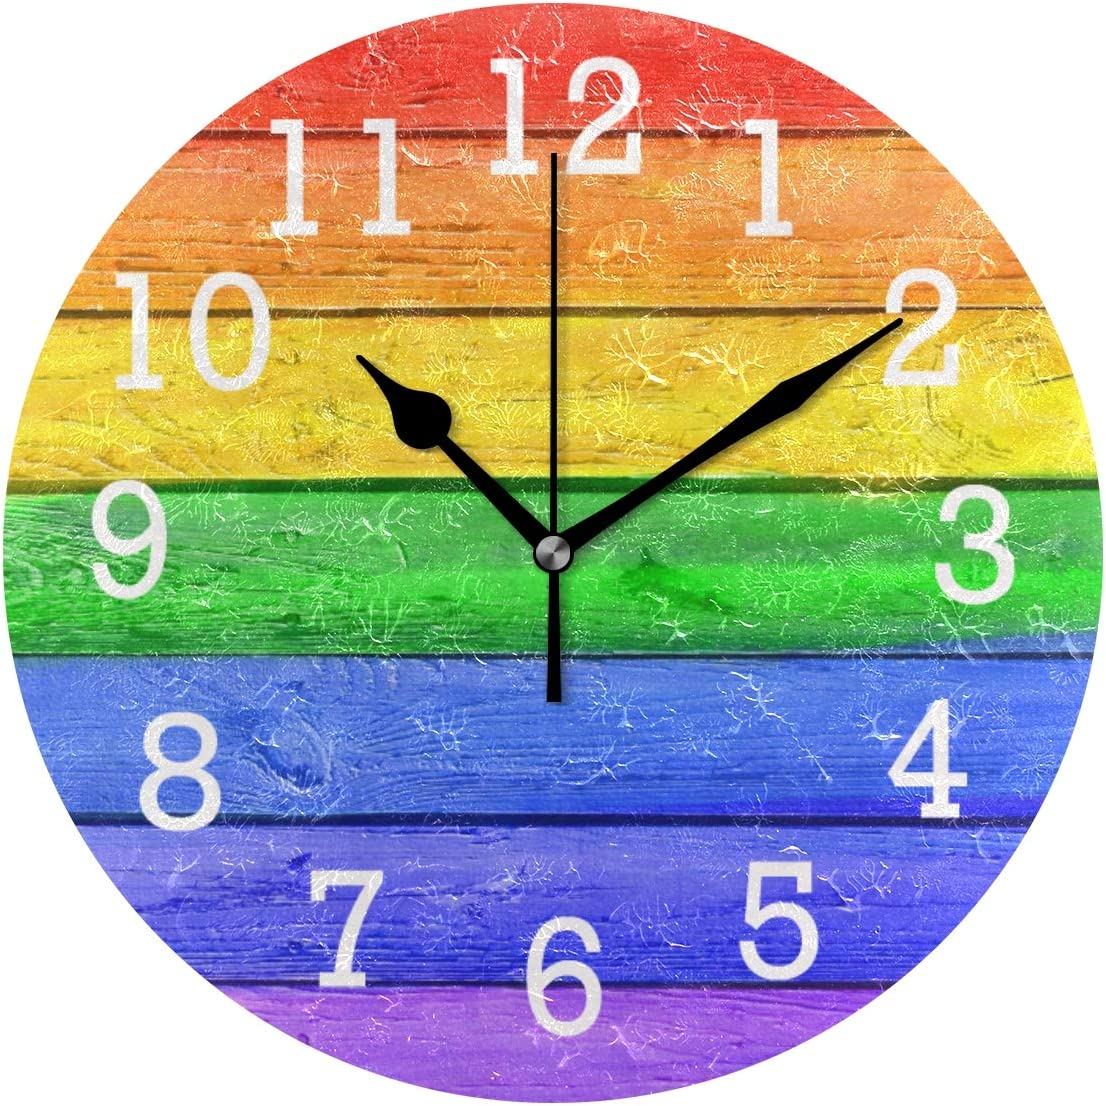 ATONO Grunge Rainbow Wooden Striped Colored Silent Non-Ticking Retro Round Wall Clock [Battery Operated] Home Decorative Easy to Read Aesthetic Kitchen Office School Living Classroom Bedroom Use